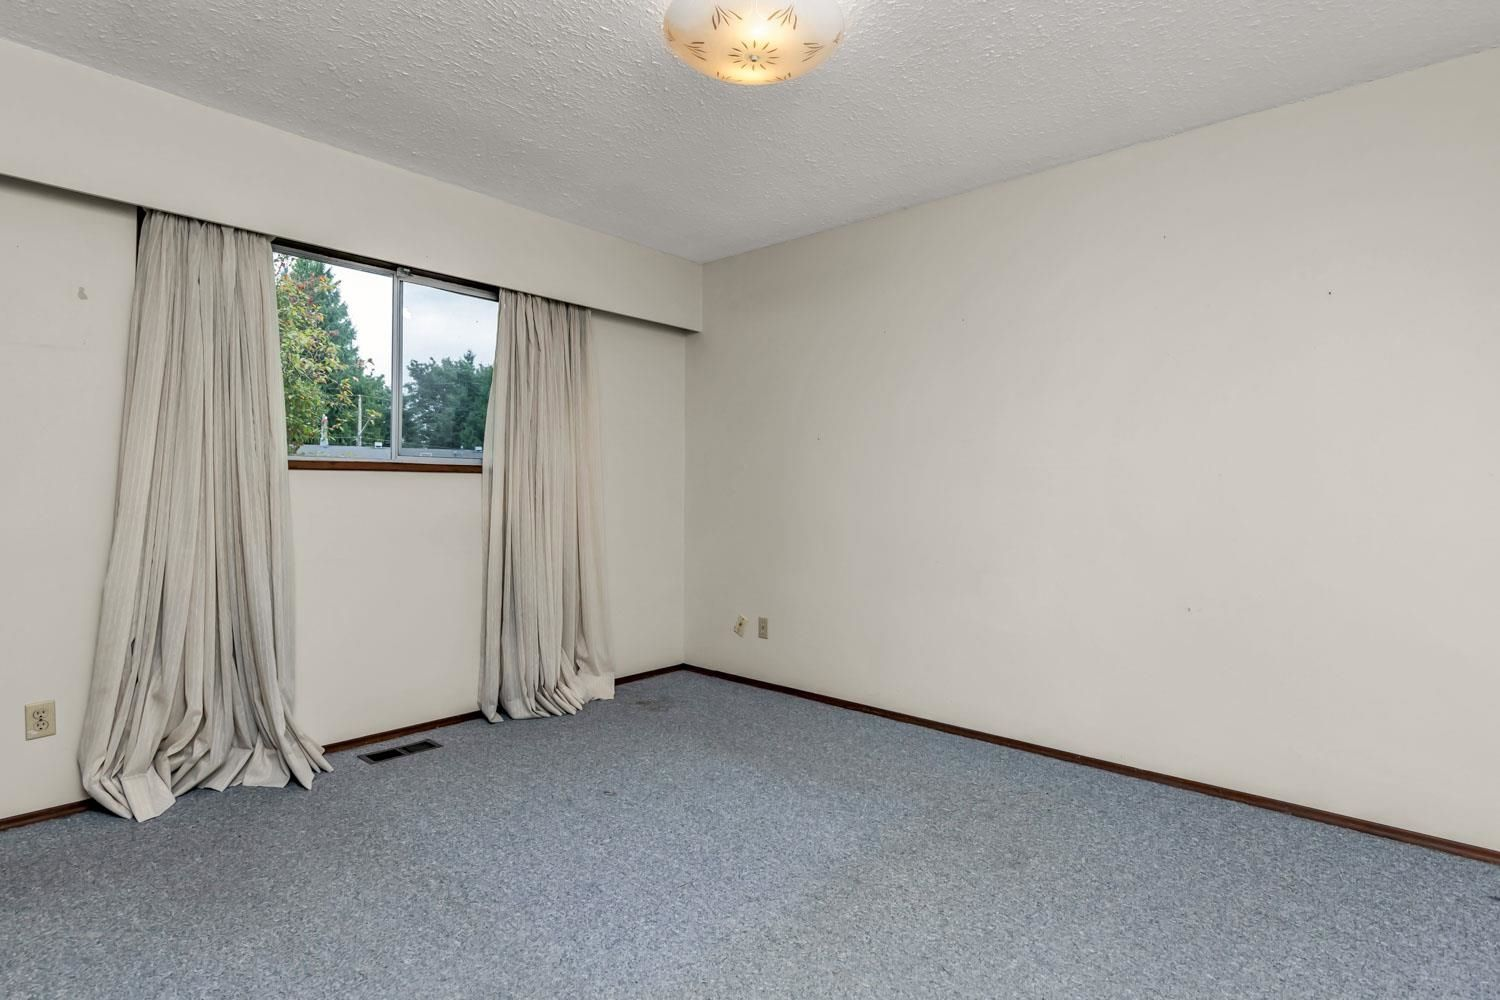 Photo 12: Photos: 2614 VALEMONT Crescent in Abbotsford: Abbotsford West House for sale : MLS®# R2611366